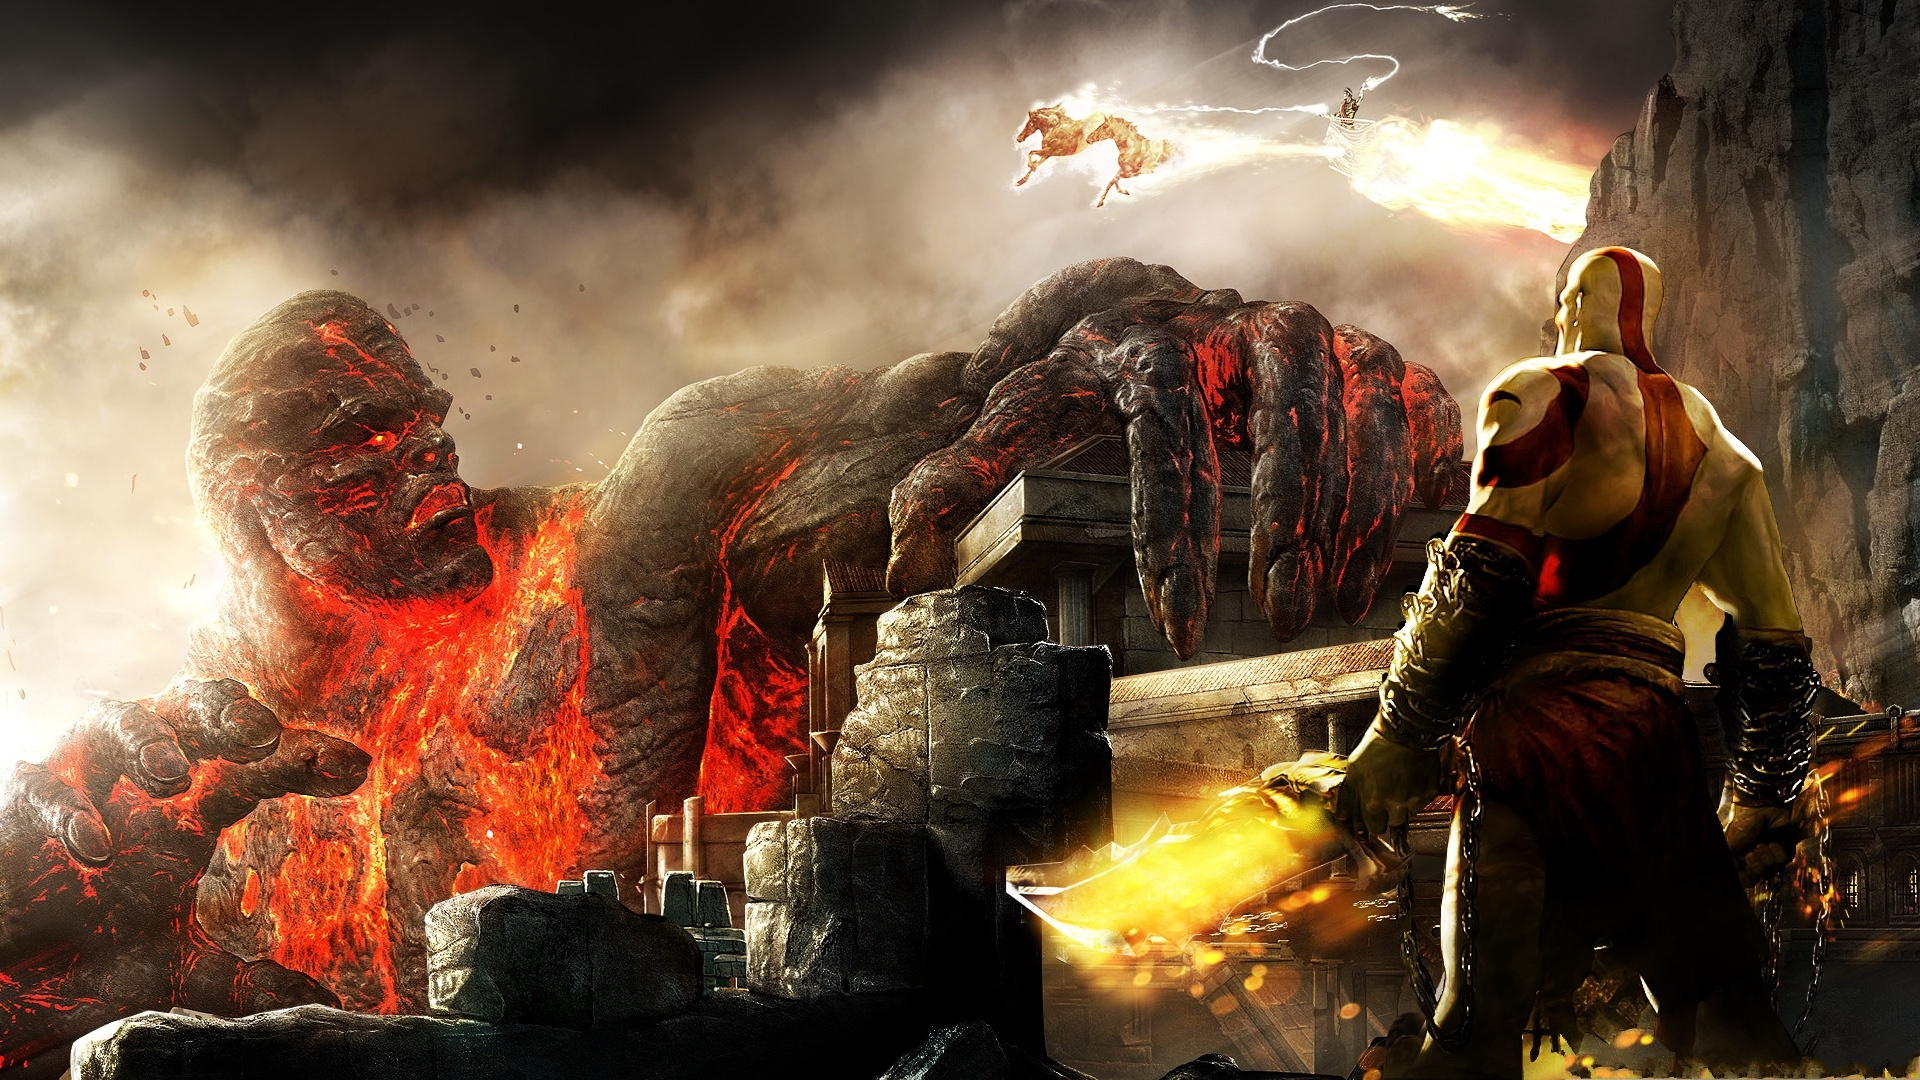 Free Download God Of War Wallpaper 738632 1920x1080 For Your